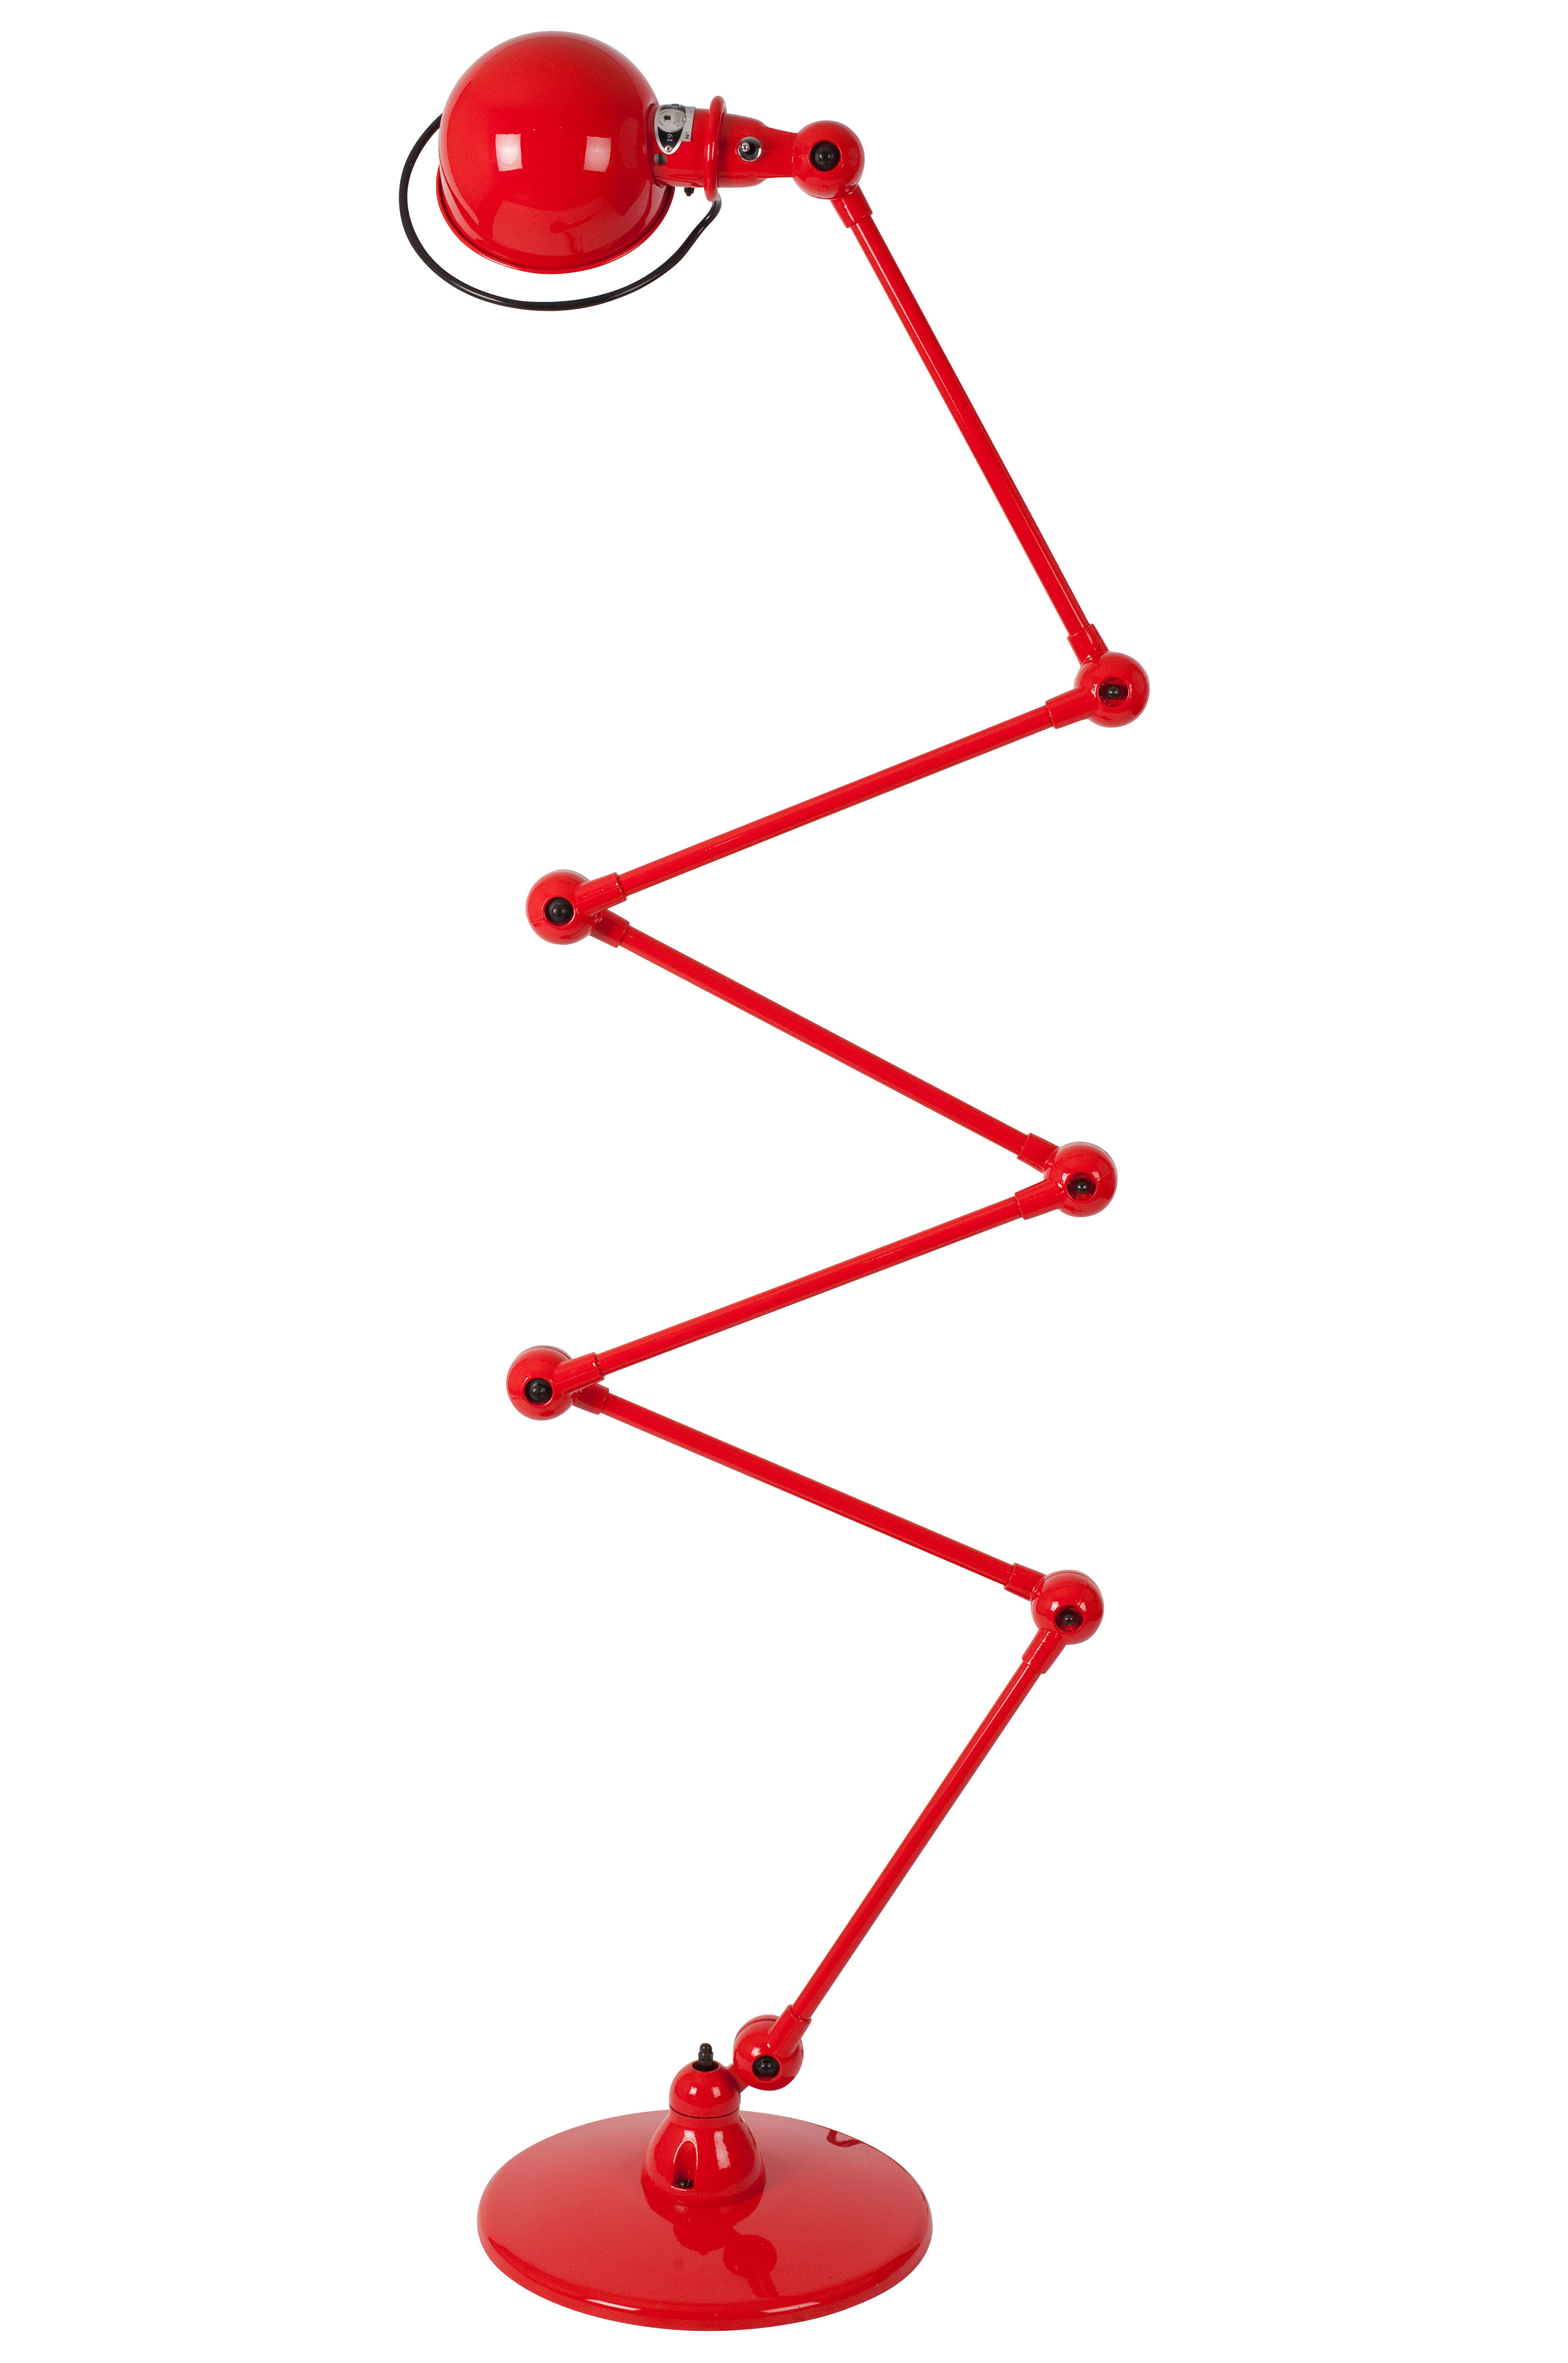 Lighting - Floor lamps - Loft Zigzag Floor lamp - 6 arms - H max 240 cm by Jieldé - Red - Stainless steel